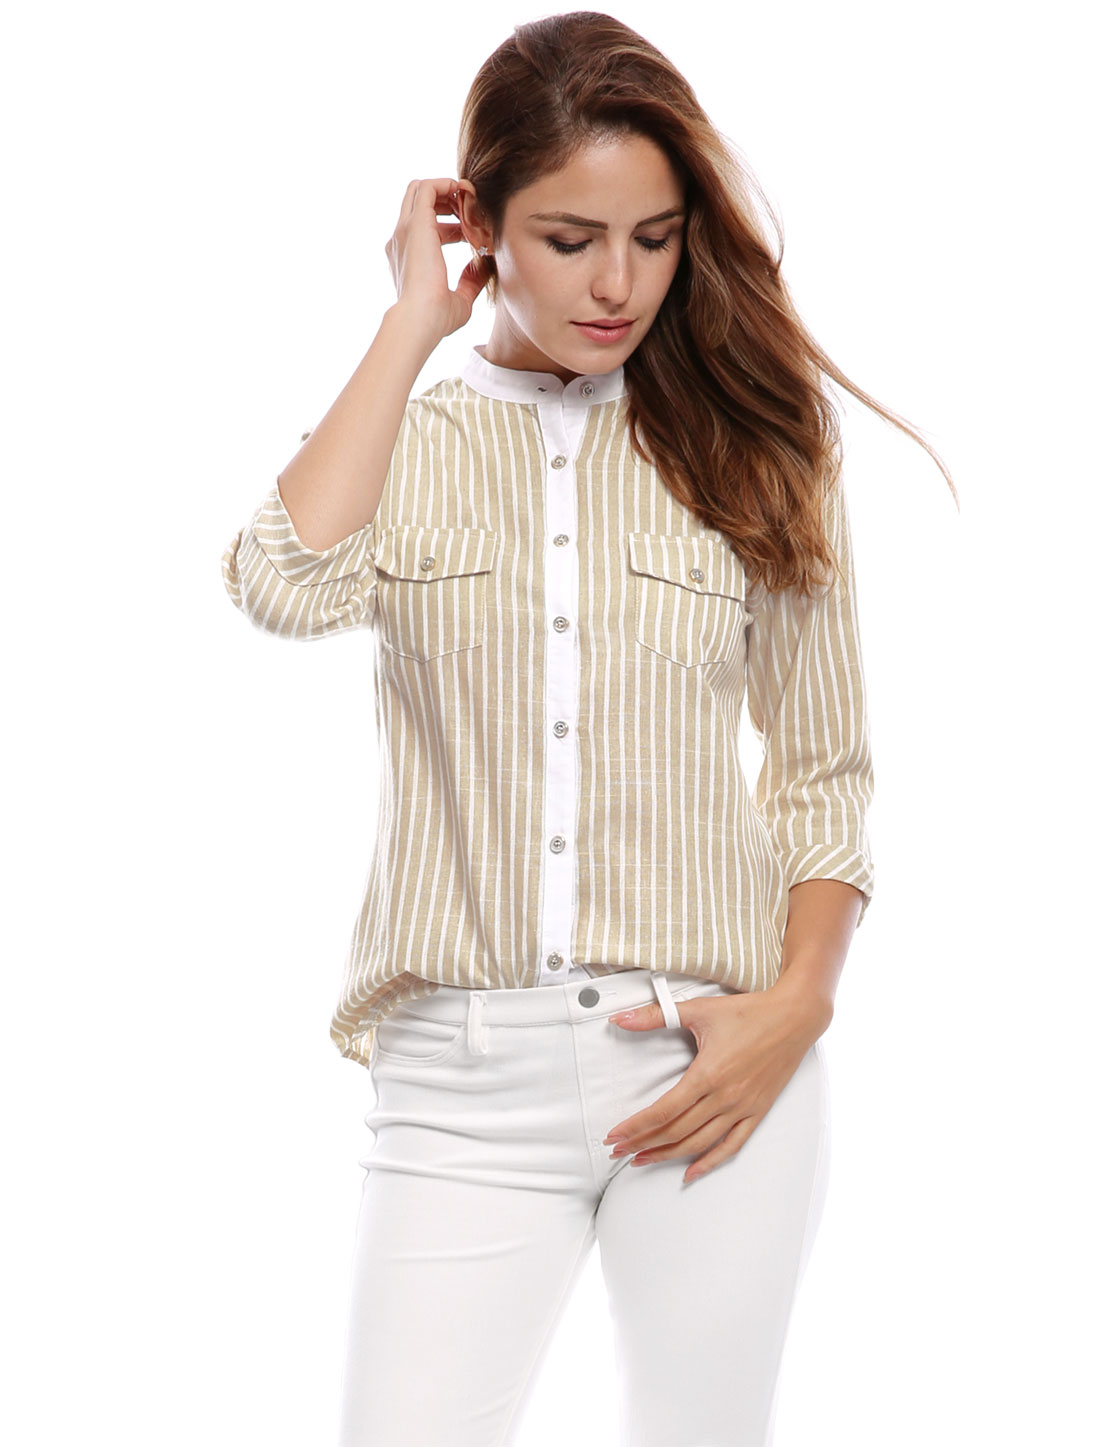 Woman Cuffed 3/4 Sleeves Stand Collar Buttoned Striped Shirt Beige XS